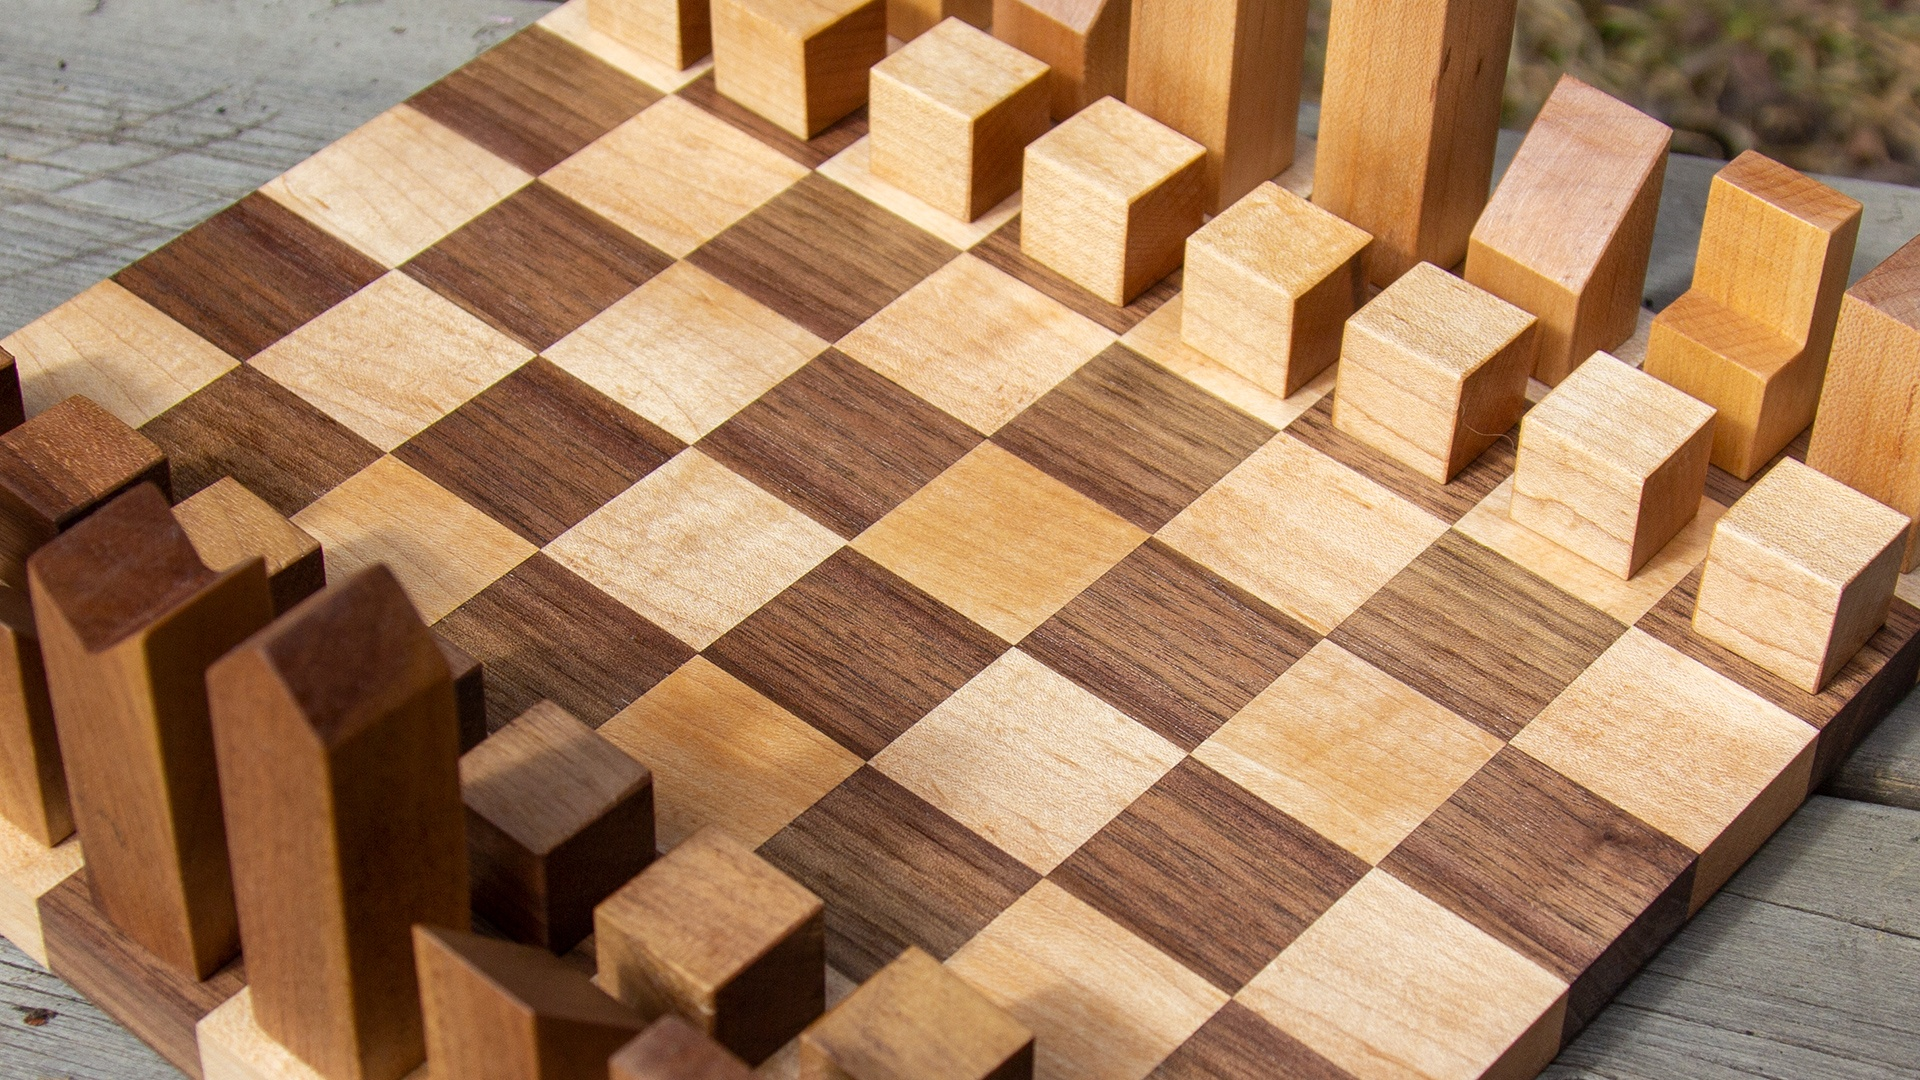 Modern wooden chessboard made from maple and walnut